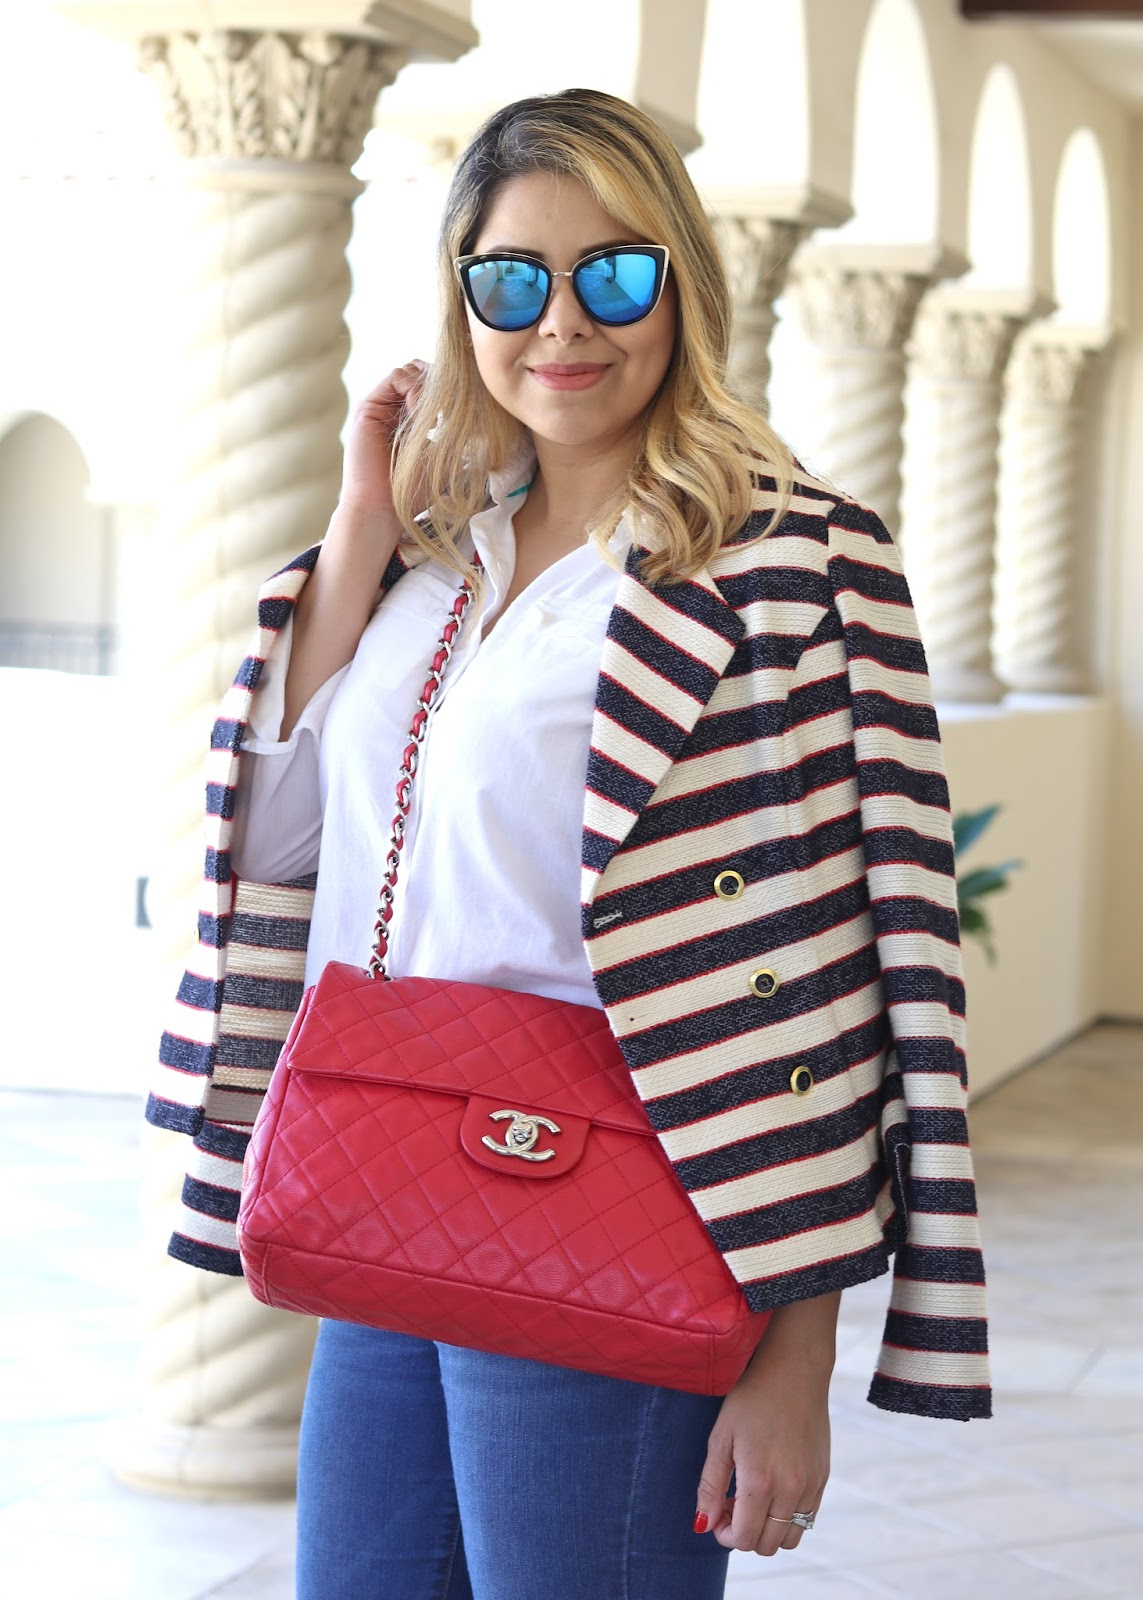 Red chanel caviar maxi flap, consigned Chanel bags, what to wear with a red chanel, quay sunglasses